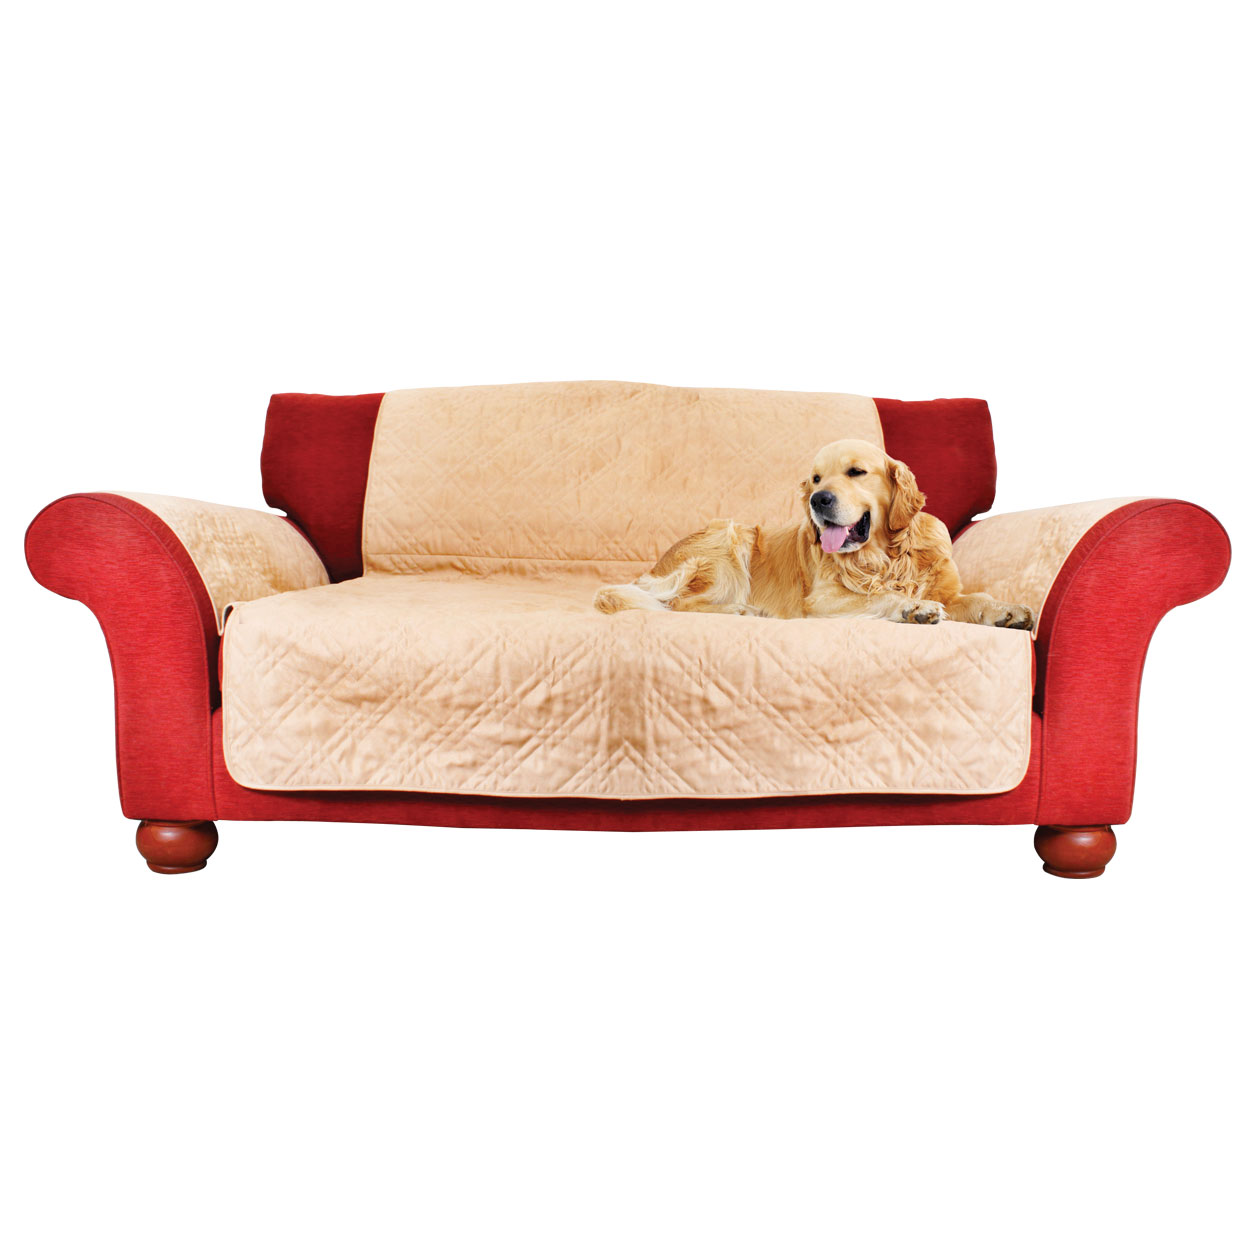 Quilted Furniture Protectors Home Coopers Of Stortford ~ Sofa Furniture Protectors